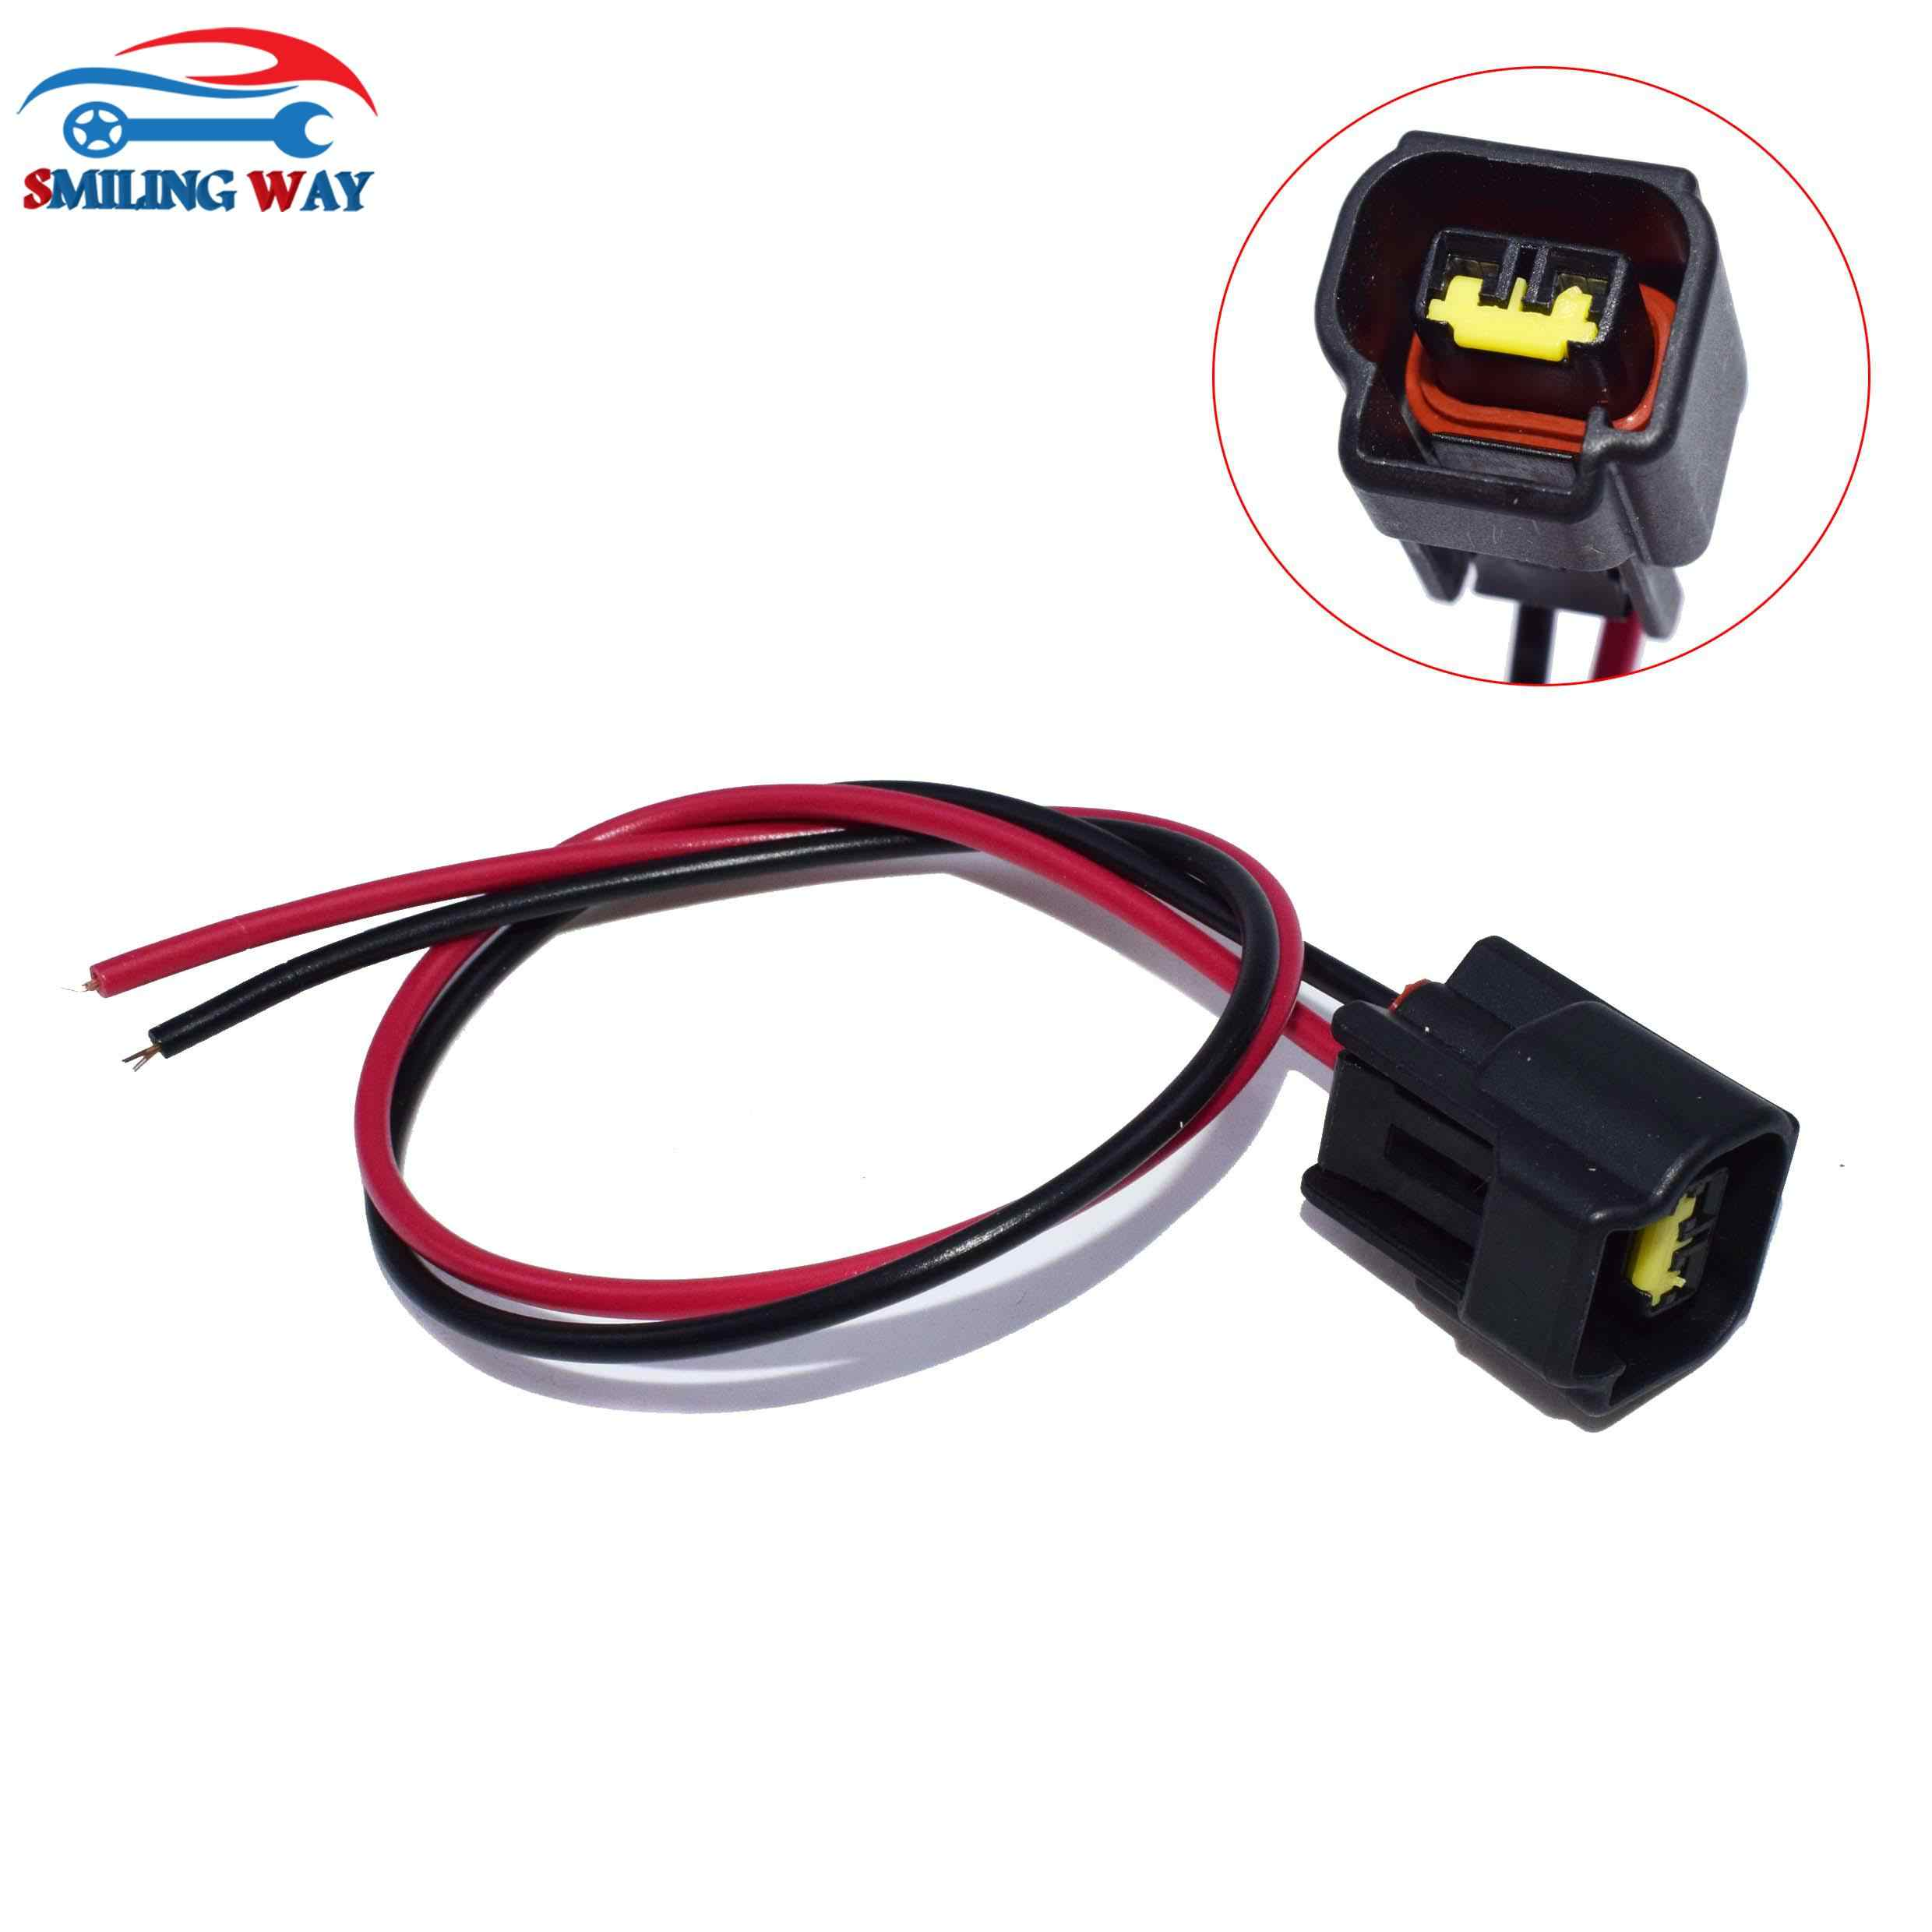 [SCHEMATICS_4US]  Engine Crankshaft Position Sensor CPS Wiring Harness Connector Pigtail  Cable Plug For Ford Lincoln Mercury| | - AliExpress | Cam Position Sensor Wiring Harness |  | www.aliexpress.com